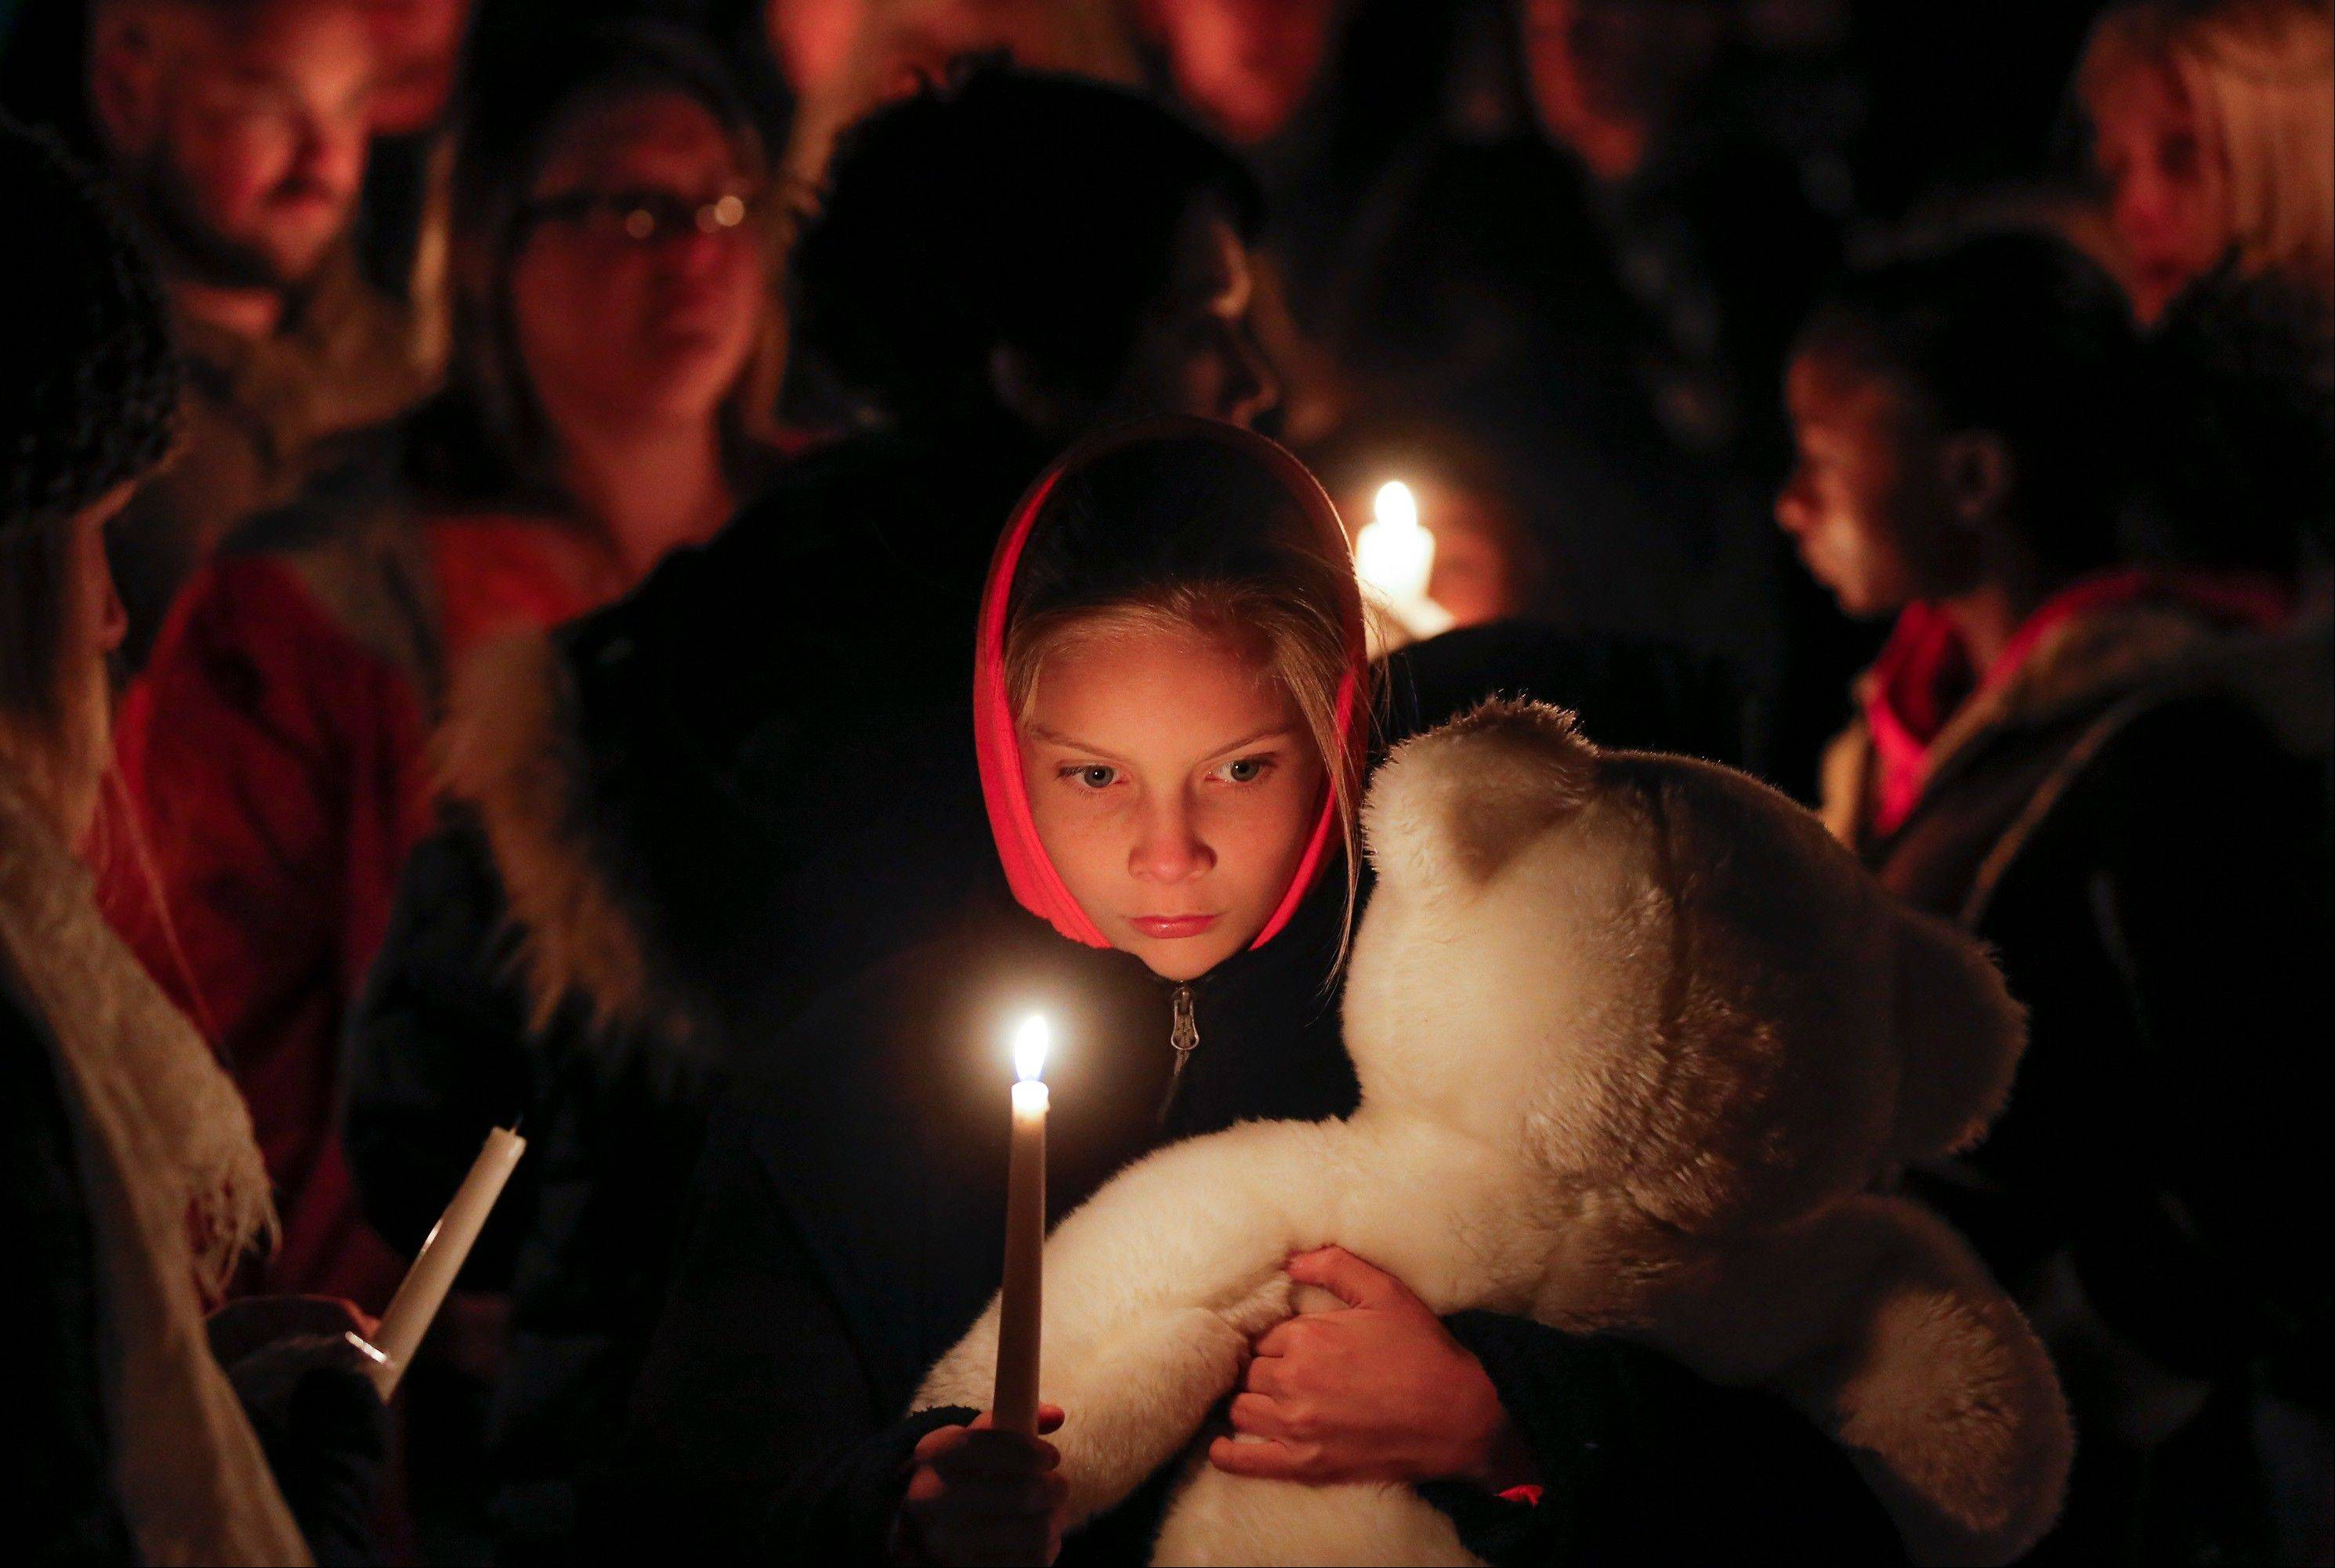 Lexi Umbarger clutches a teddy bear Wednesday during a candlelight vigil in Parsons, Kan., for Cami Umbarger and her three young children Hollie, Jaxon and Averie, who were found murdered in their Parsons home.